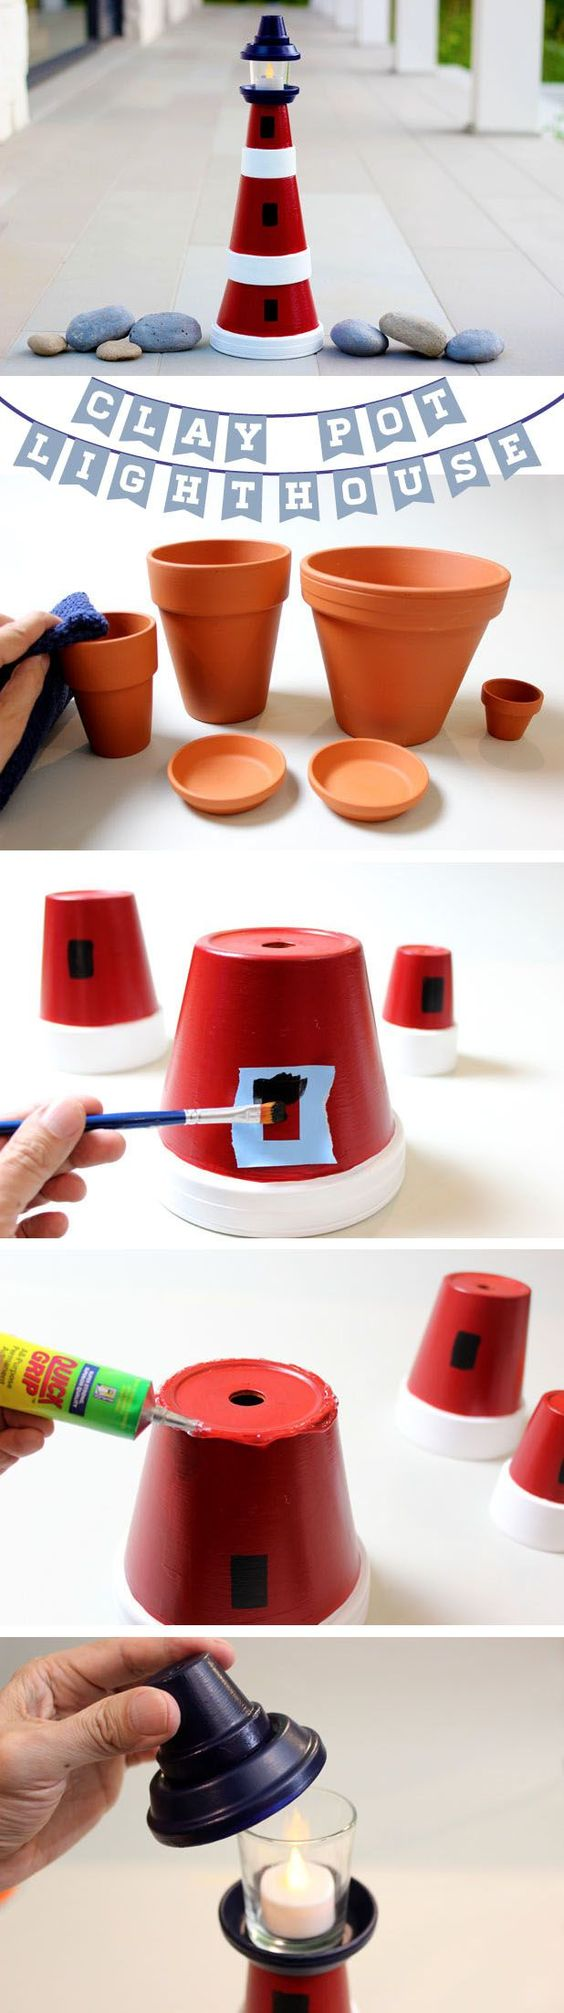 DIY Lighthouse Made From Terra Cotta Clay Pots.